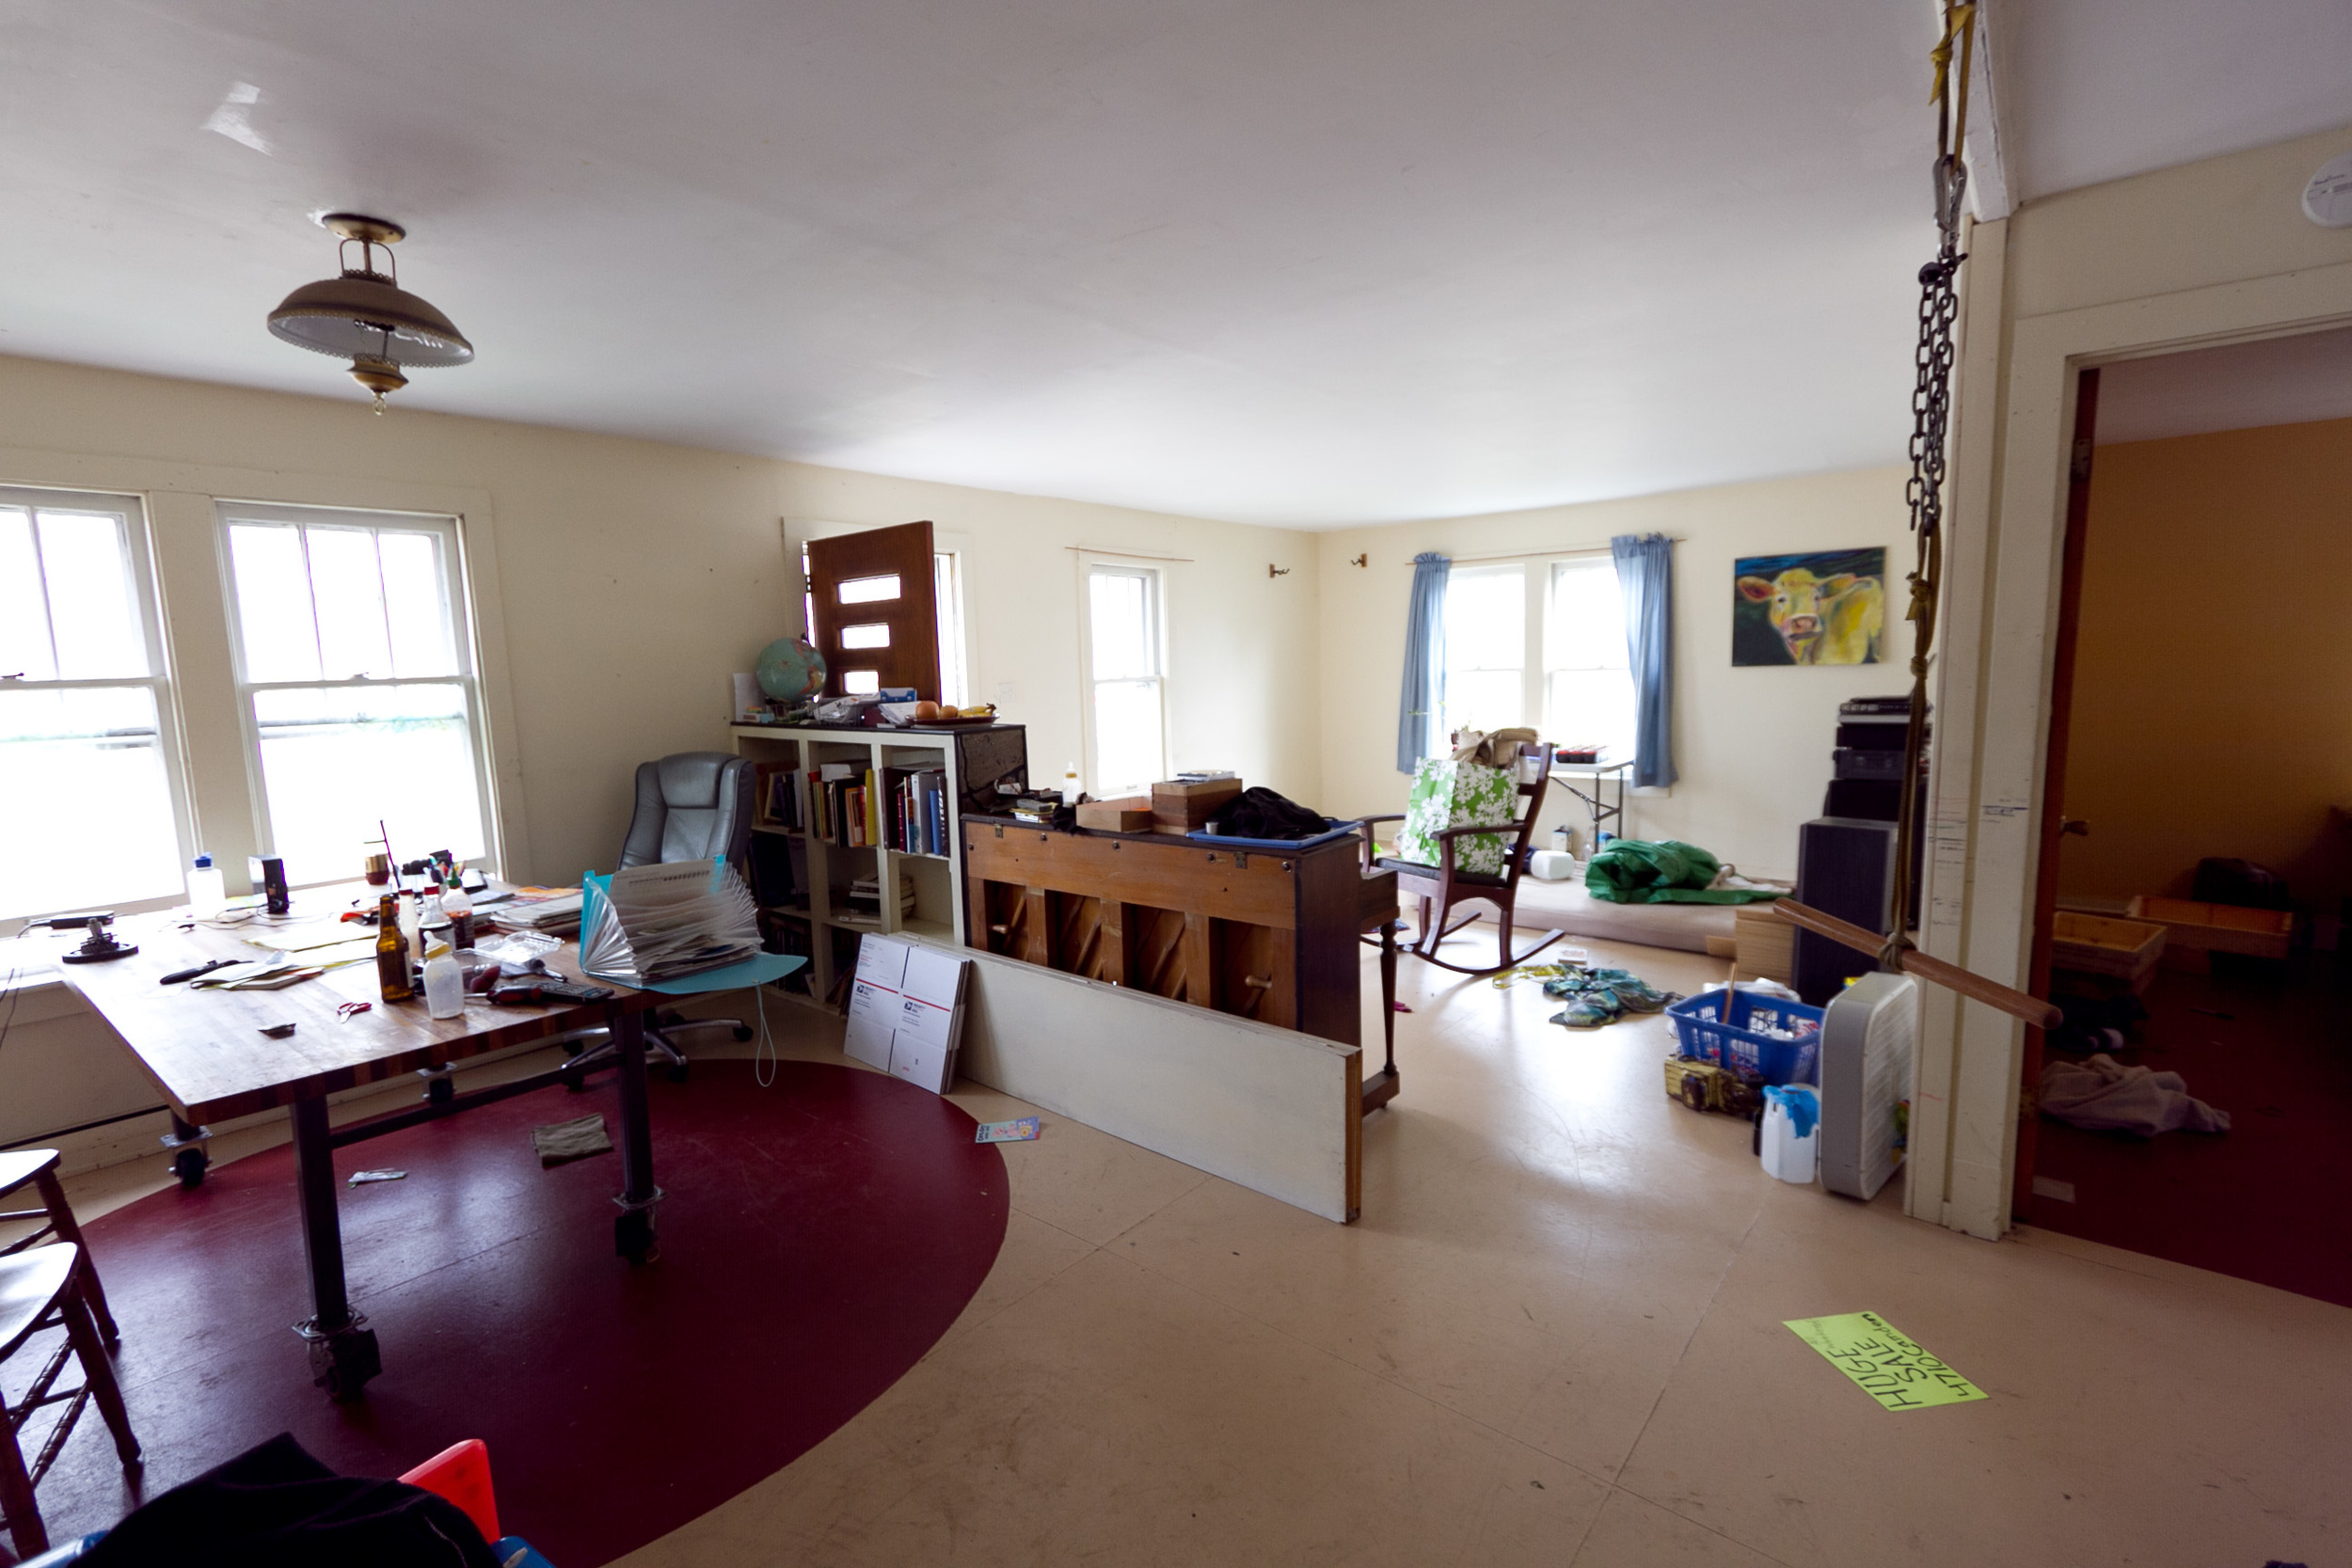 Living room, before staging